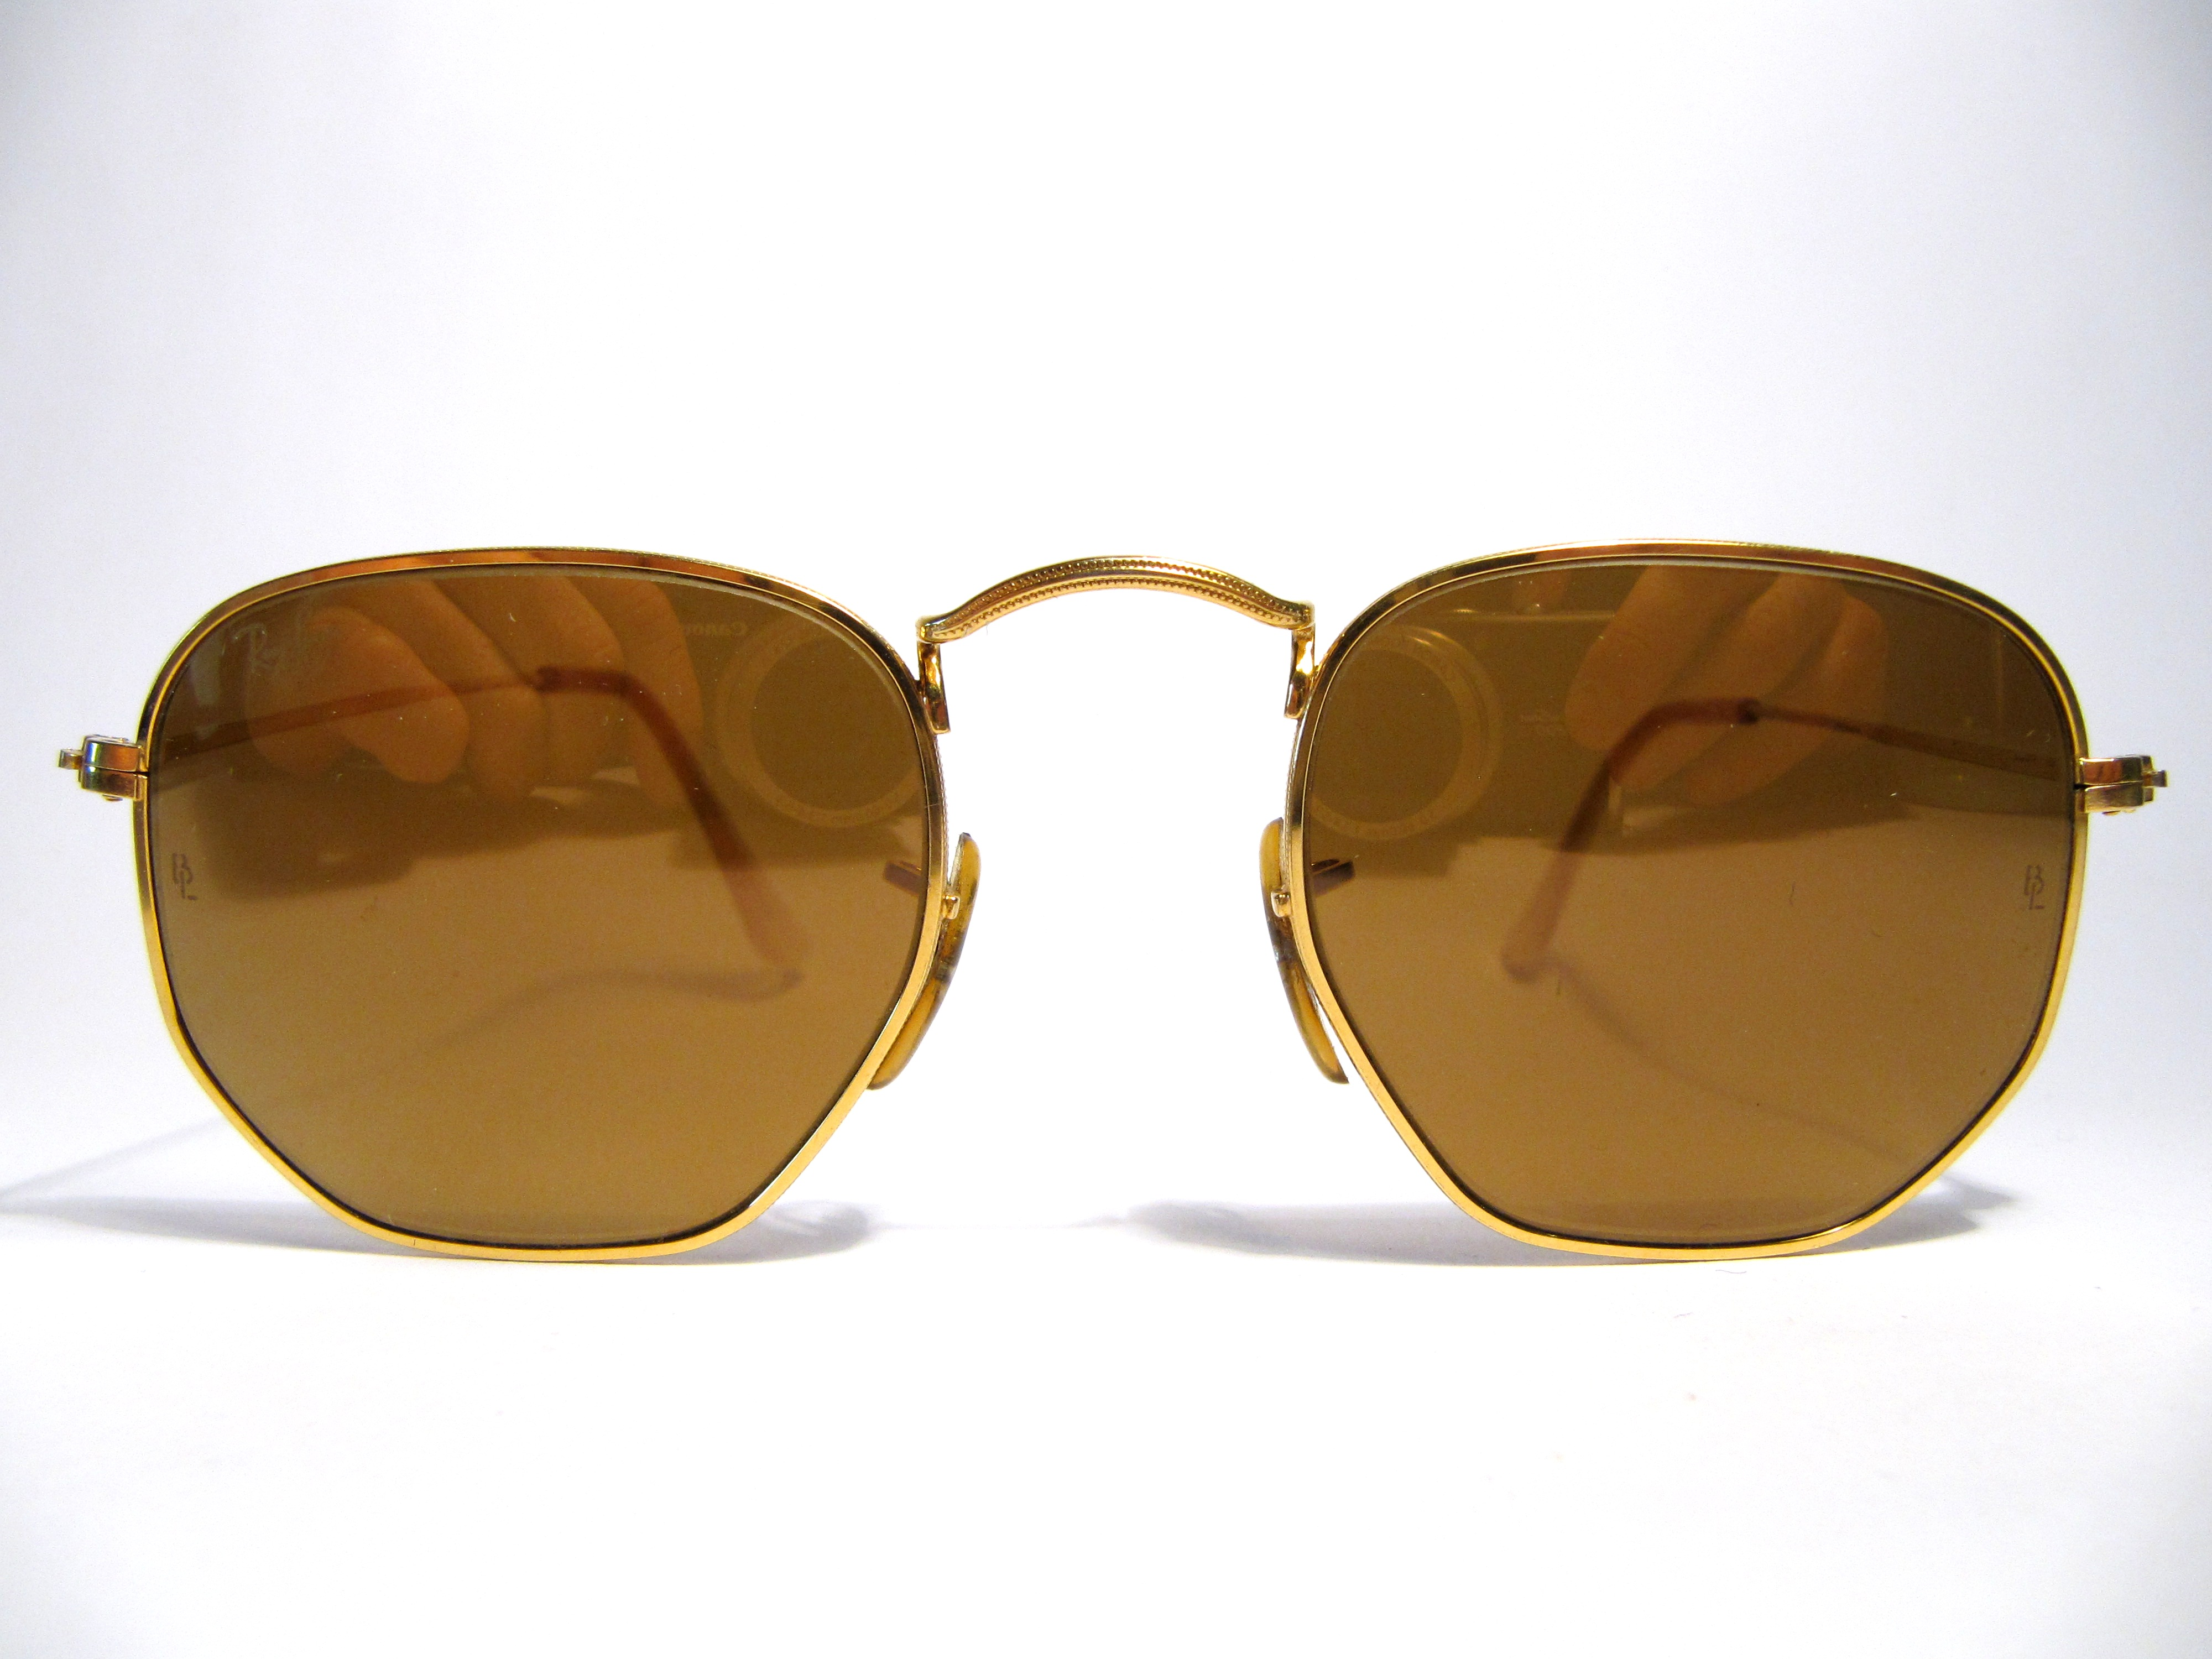 ray ban sunglasses usa  Ray Ban Sunglasses Usa Price - Ficts